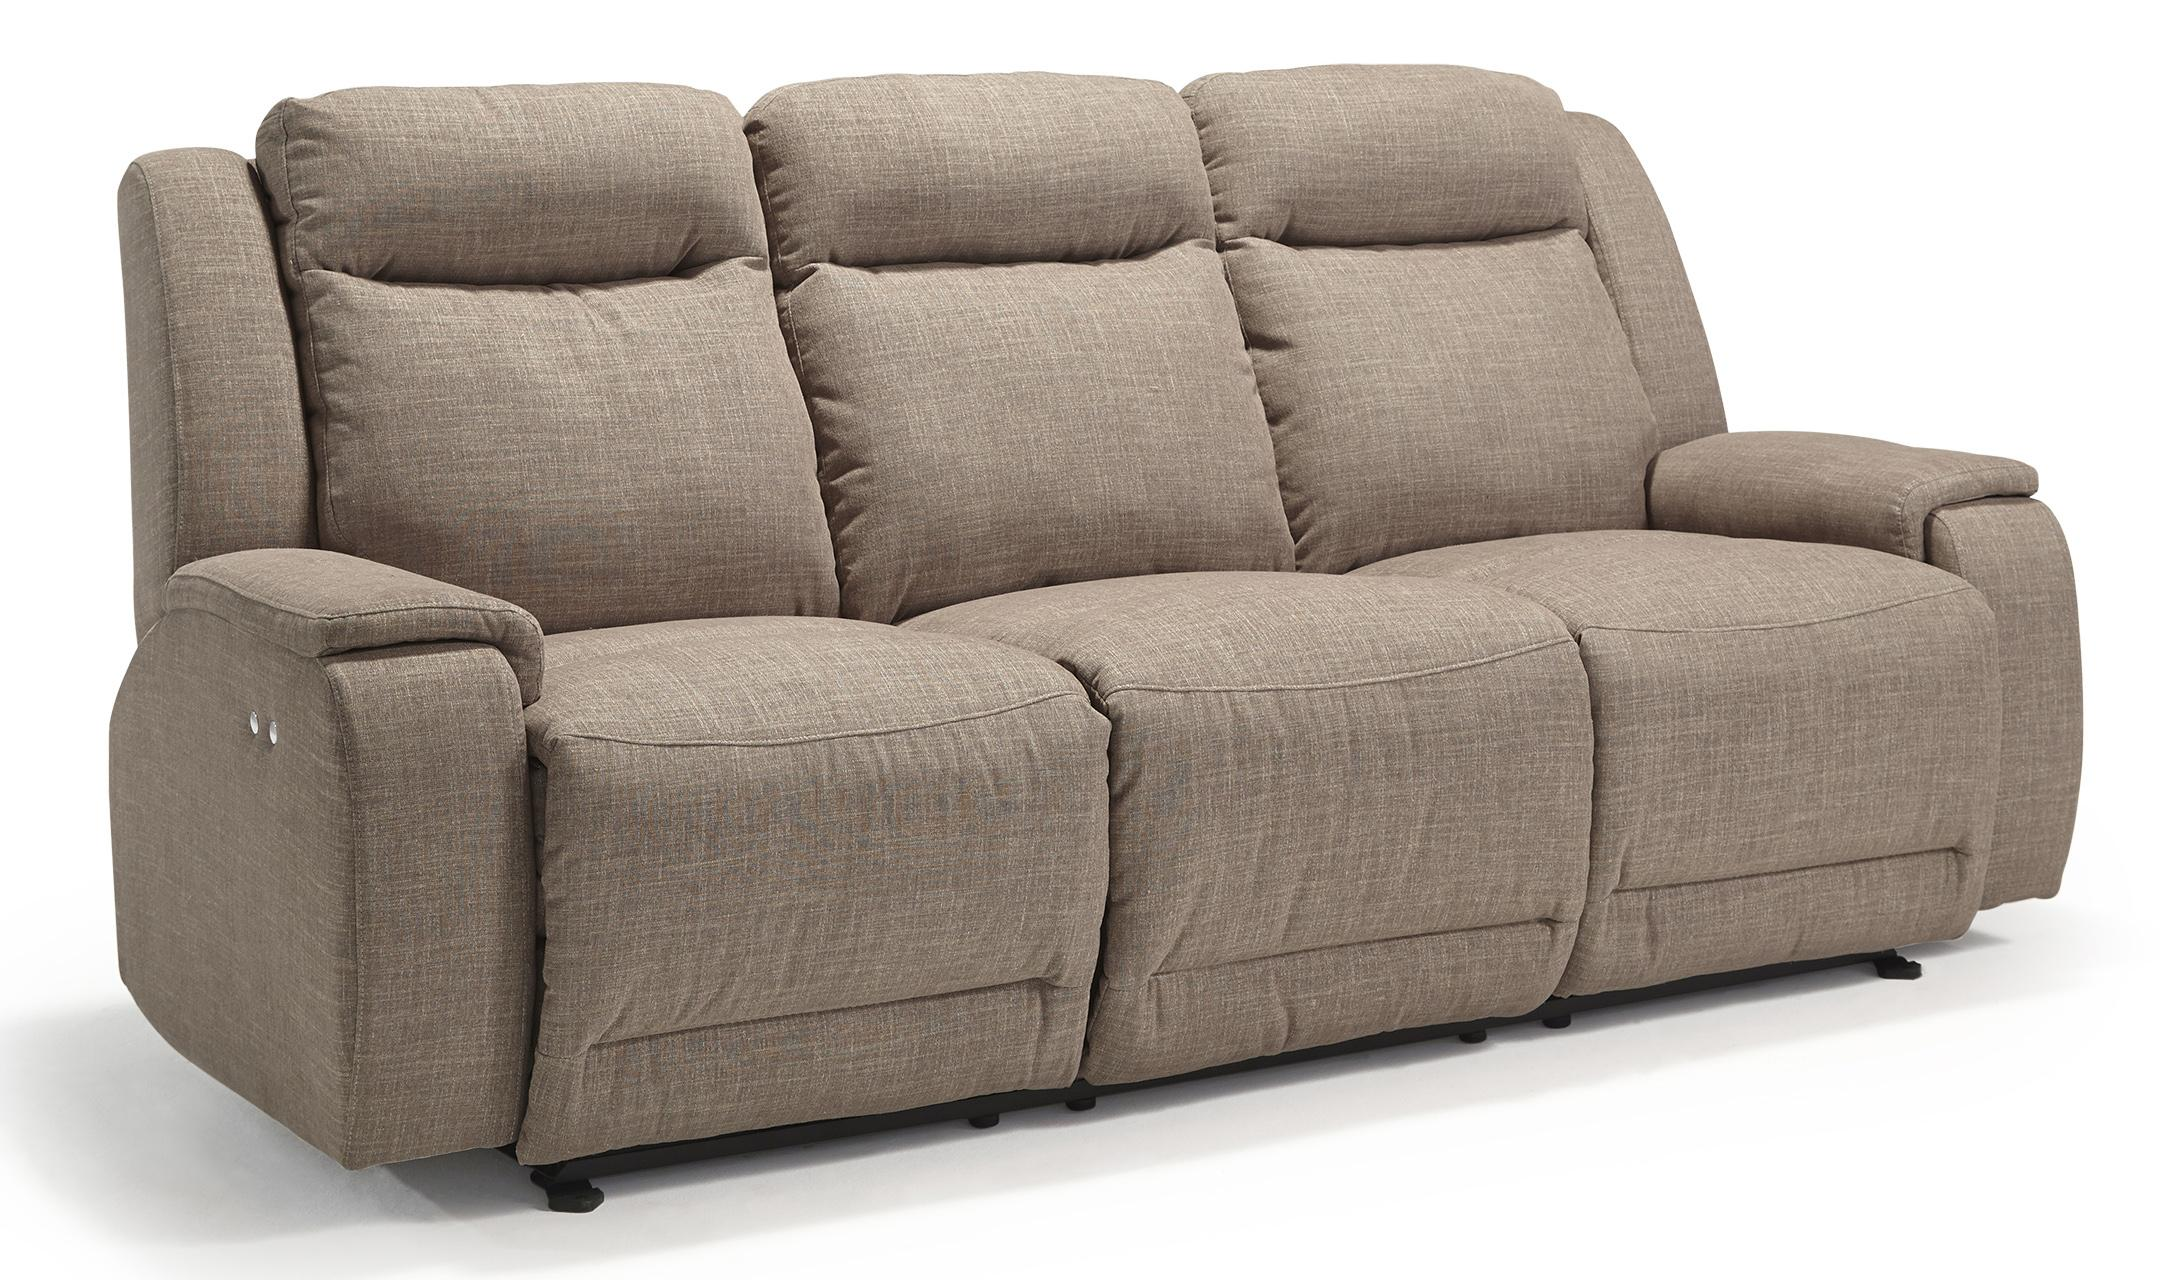 Hardisty casual reclining sofa with memory foam cushions for Casual couch